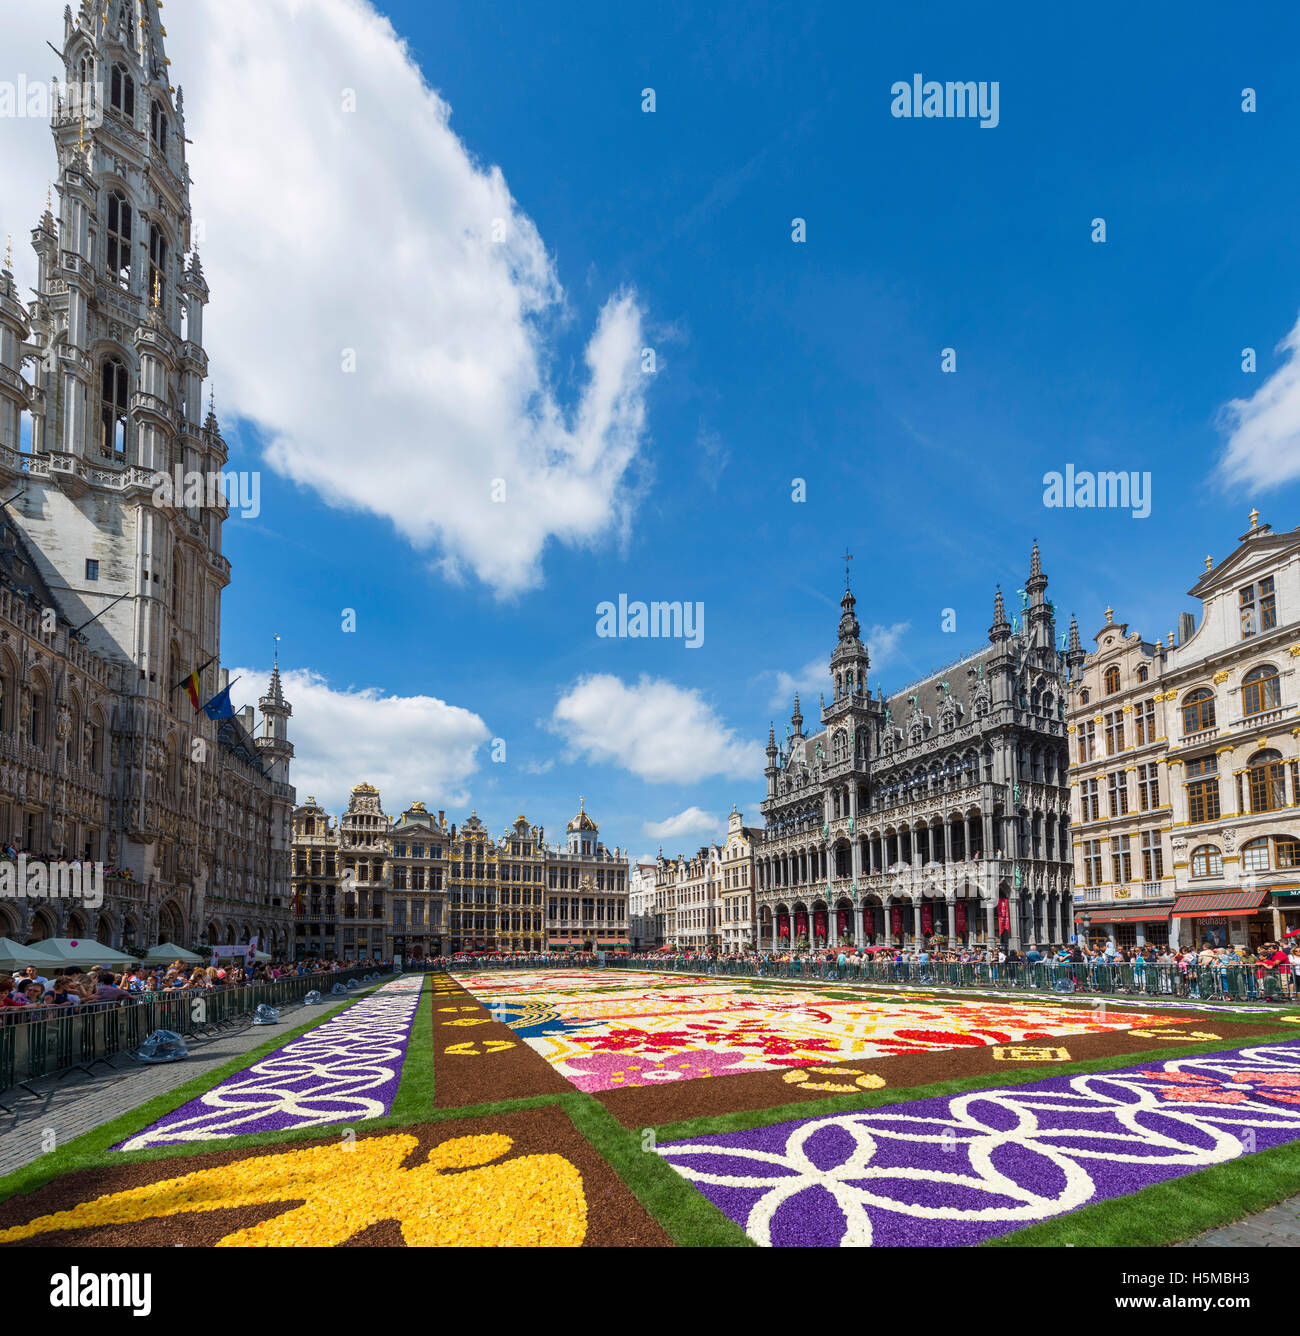 The 2016 Carpet of Flowers in the Grand Place (Grote Markt) with the Town Hall to the left, Brussels, Belgium. - Stock Image